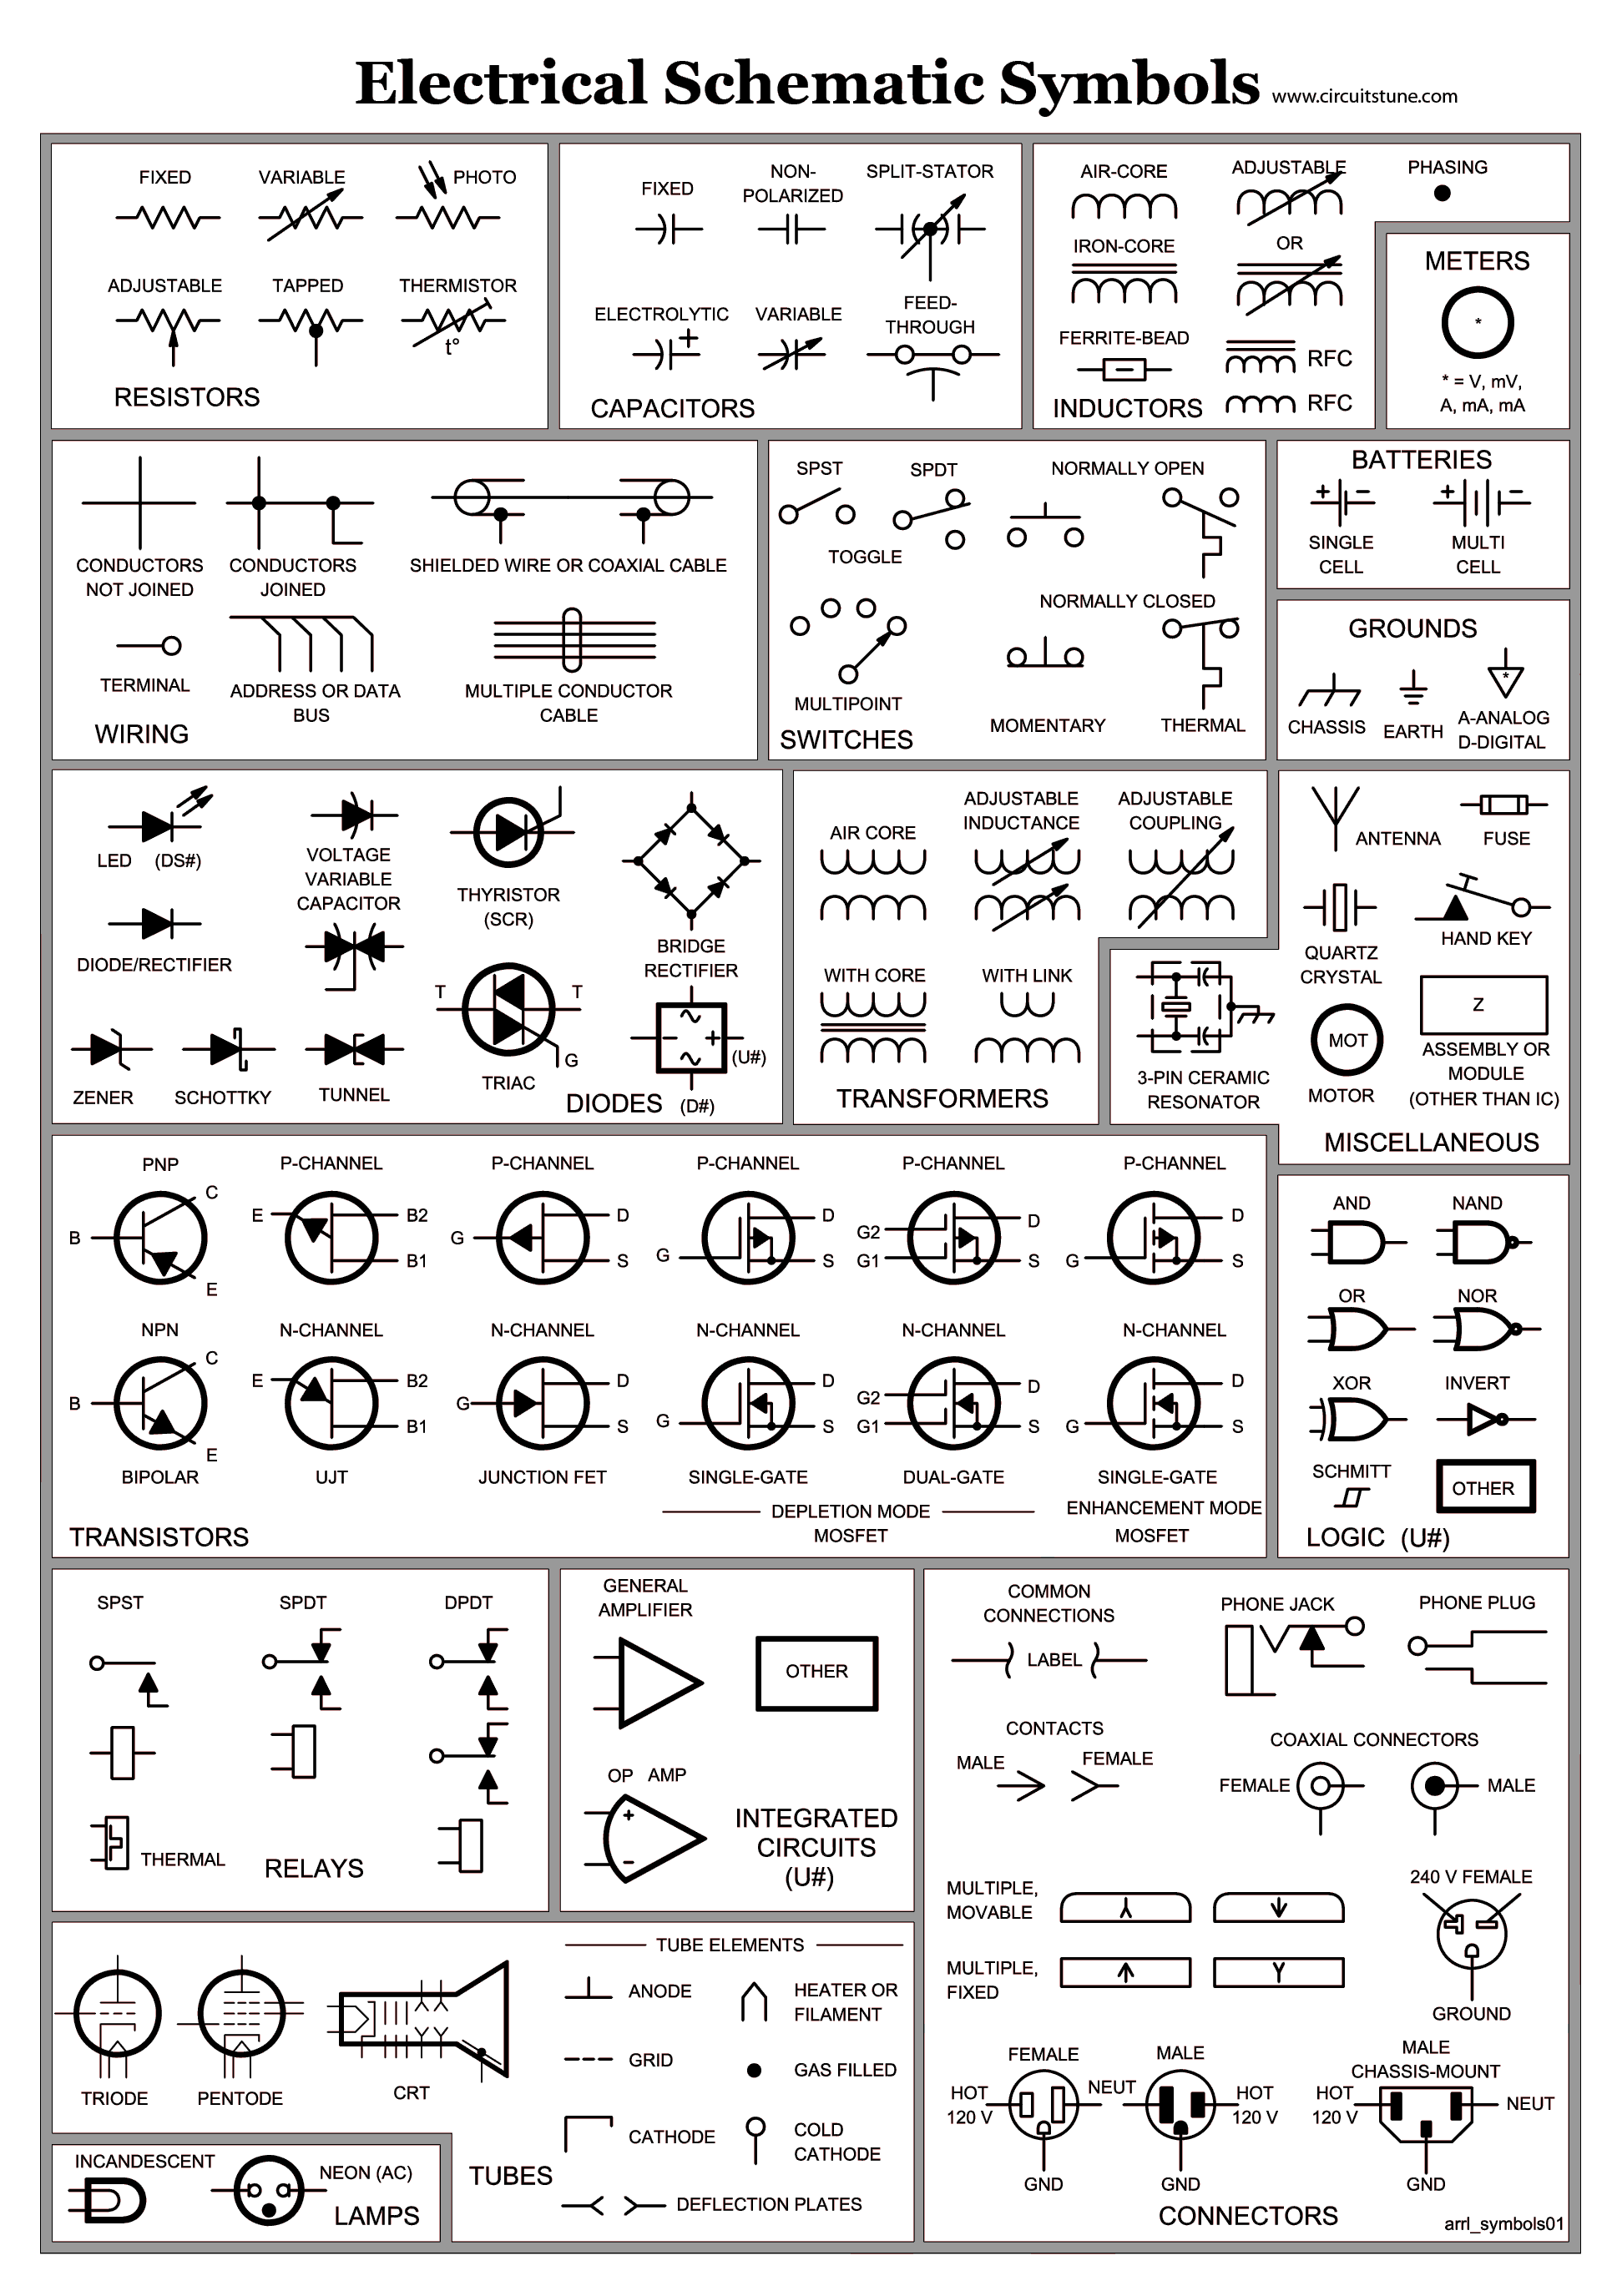 a65d176364692d2ebe913b58a654cfc3 basic schematic symbols google search schematics pinterest  at alyssarenee.co